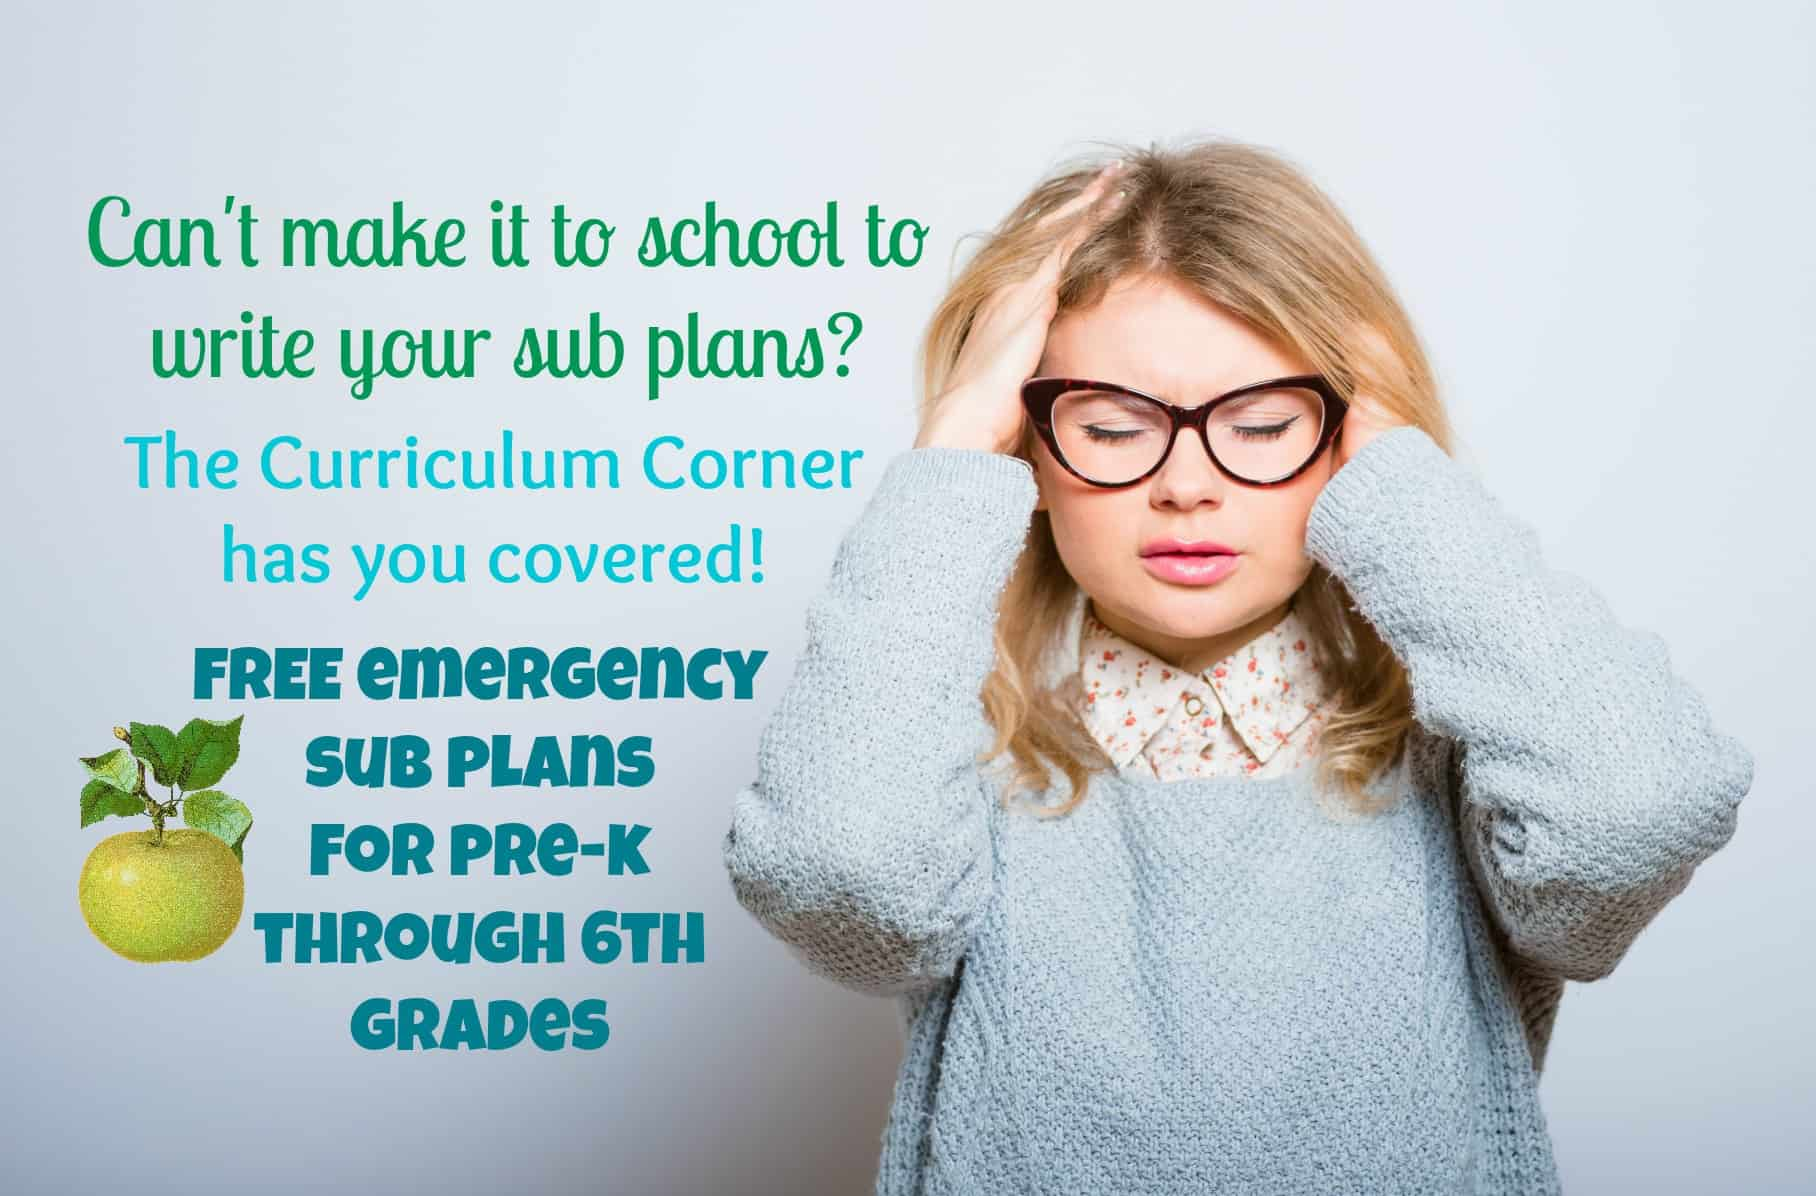 Pre-K - 6th Grade Emergency Sub Plans - The Curriculum Corner 123